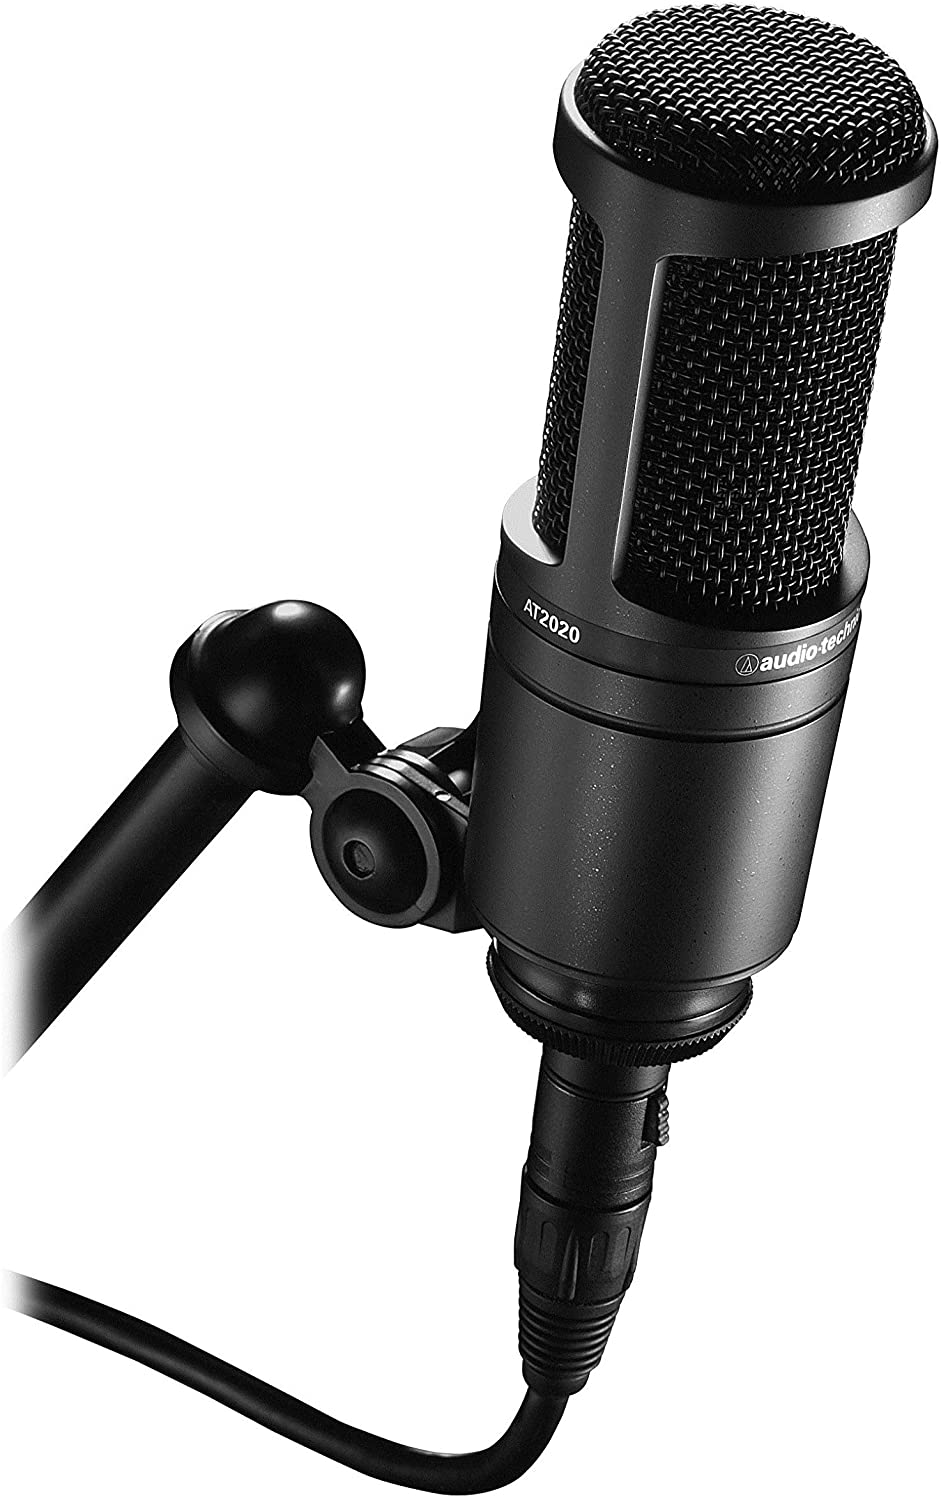 Best Noise-Canceling Microphones  Audio-Technia AT2020 Cardioid Condenser Microphone